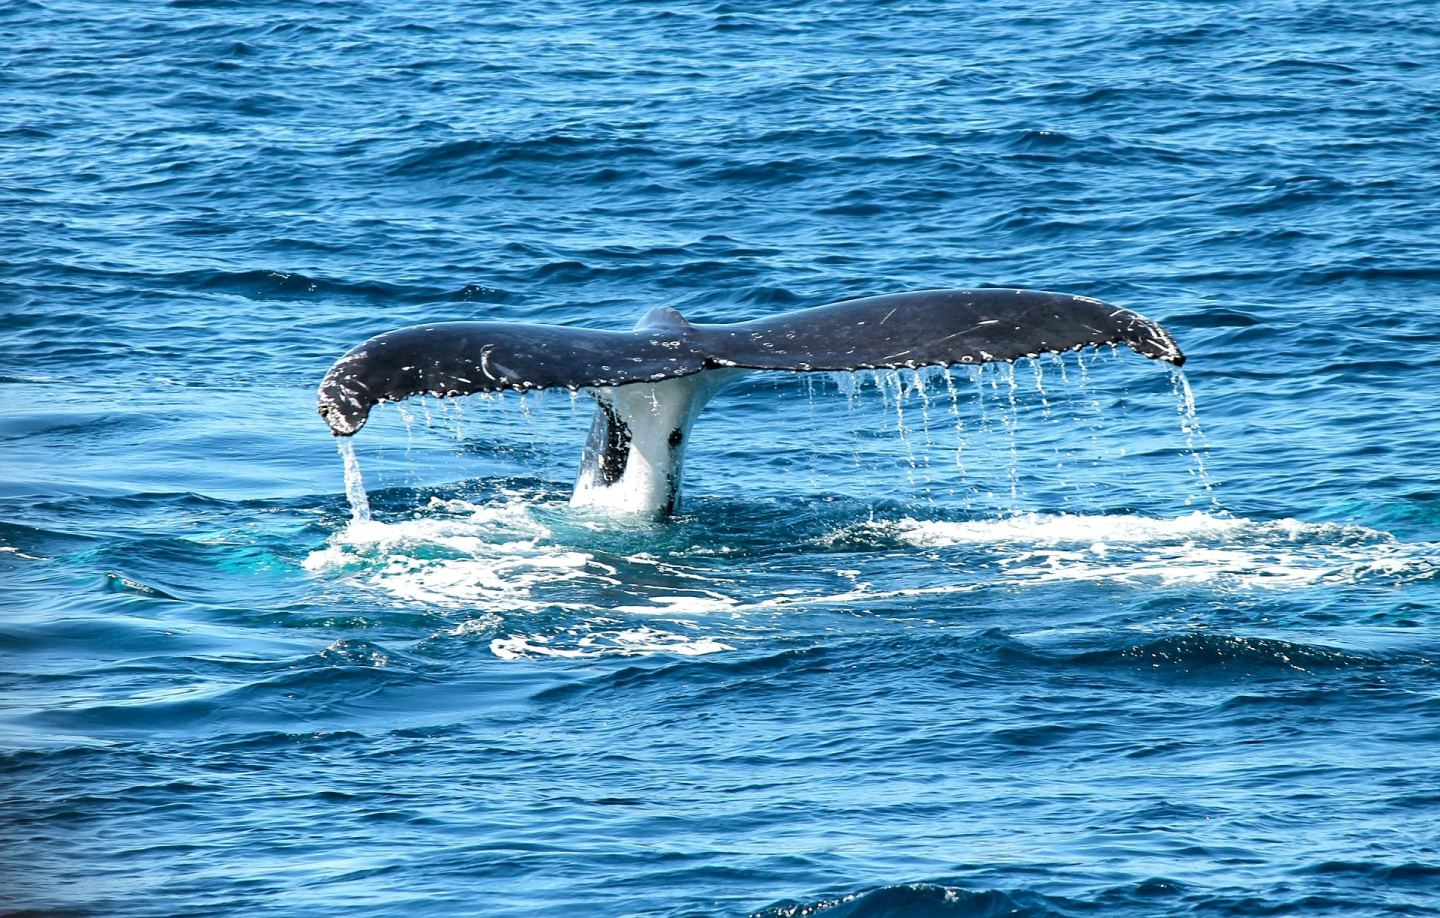 Fred. Olsen UK summer cruises will involve whale and wildlife experts